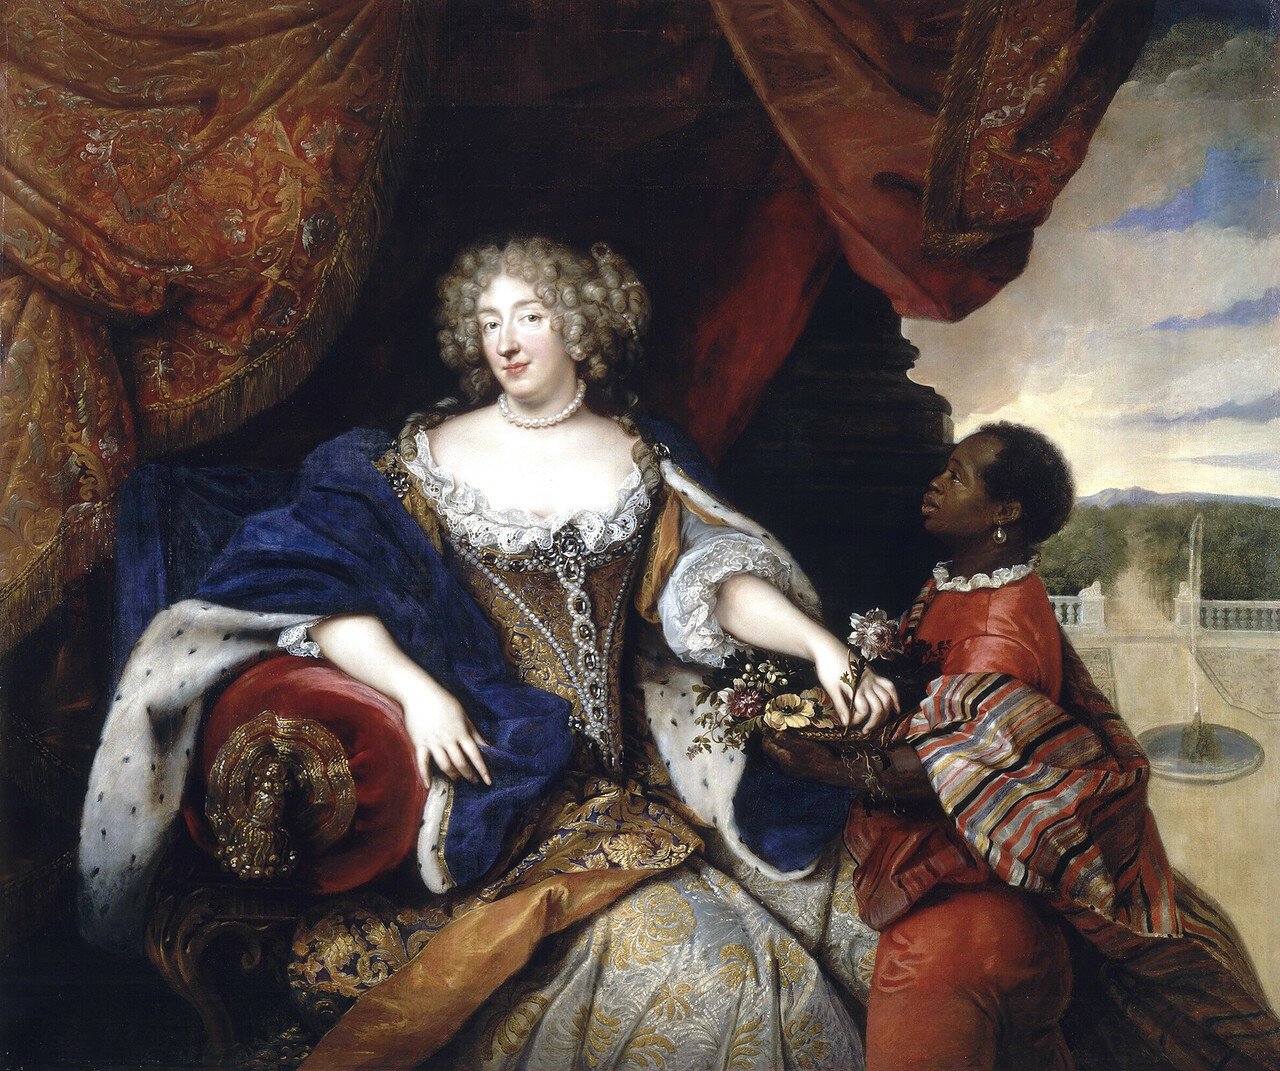 1680_portrait_of_the_Duchess_of_Orléans_(Elisabeth_Charlotte_of_the_Palatinate)_being_attended_to_by_a_slave_by_François_de_Troy.jpg